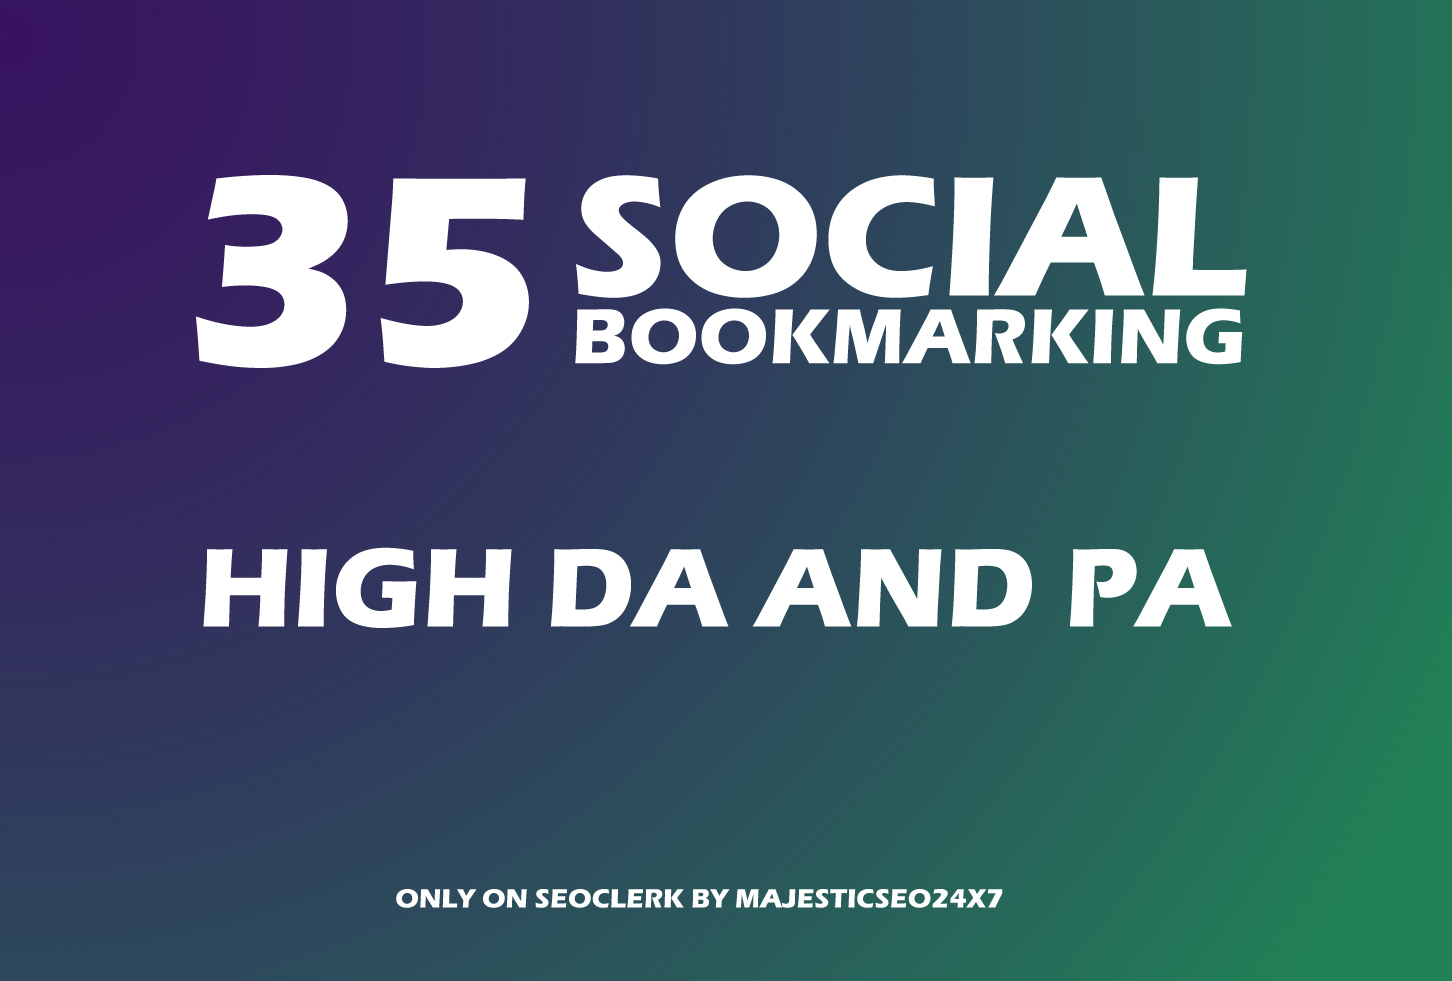 Instant 35 Live Social Bookmarking Links within 24 hours